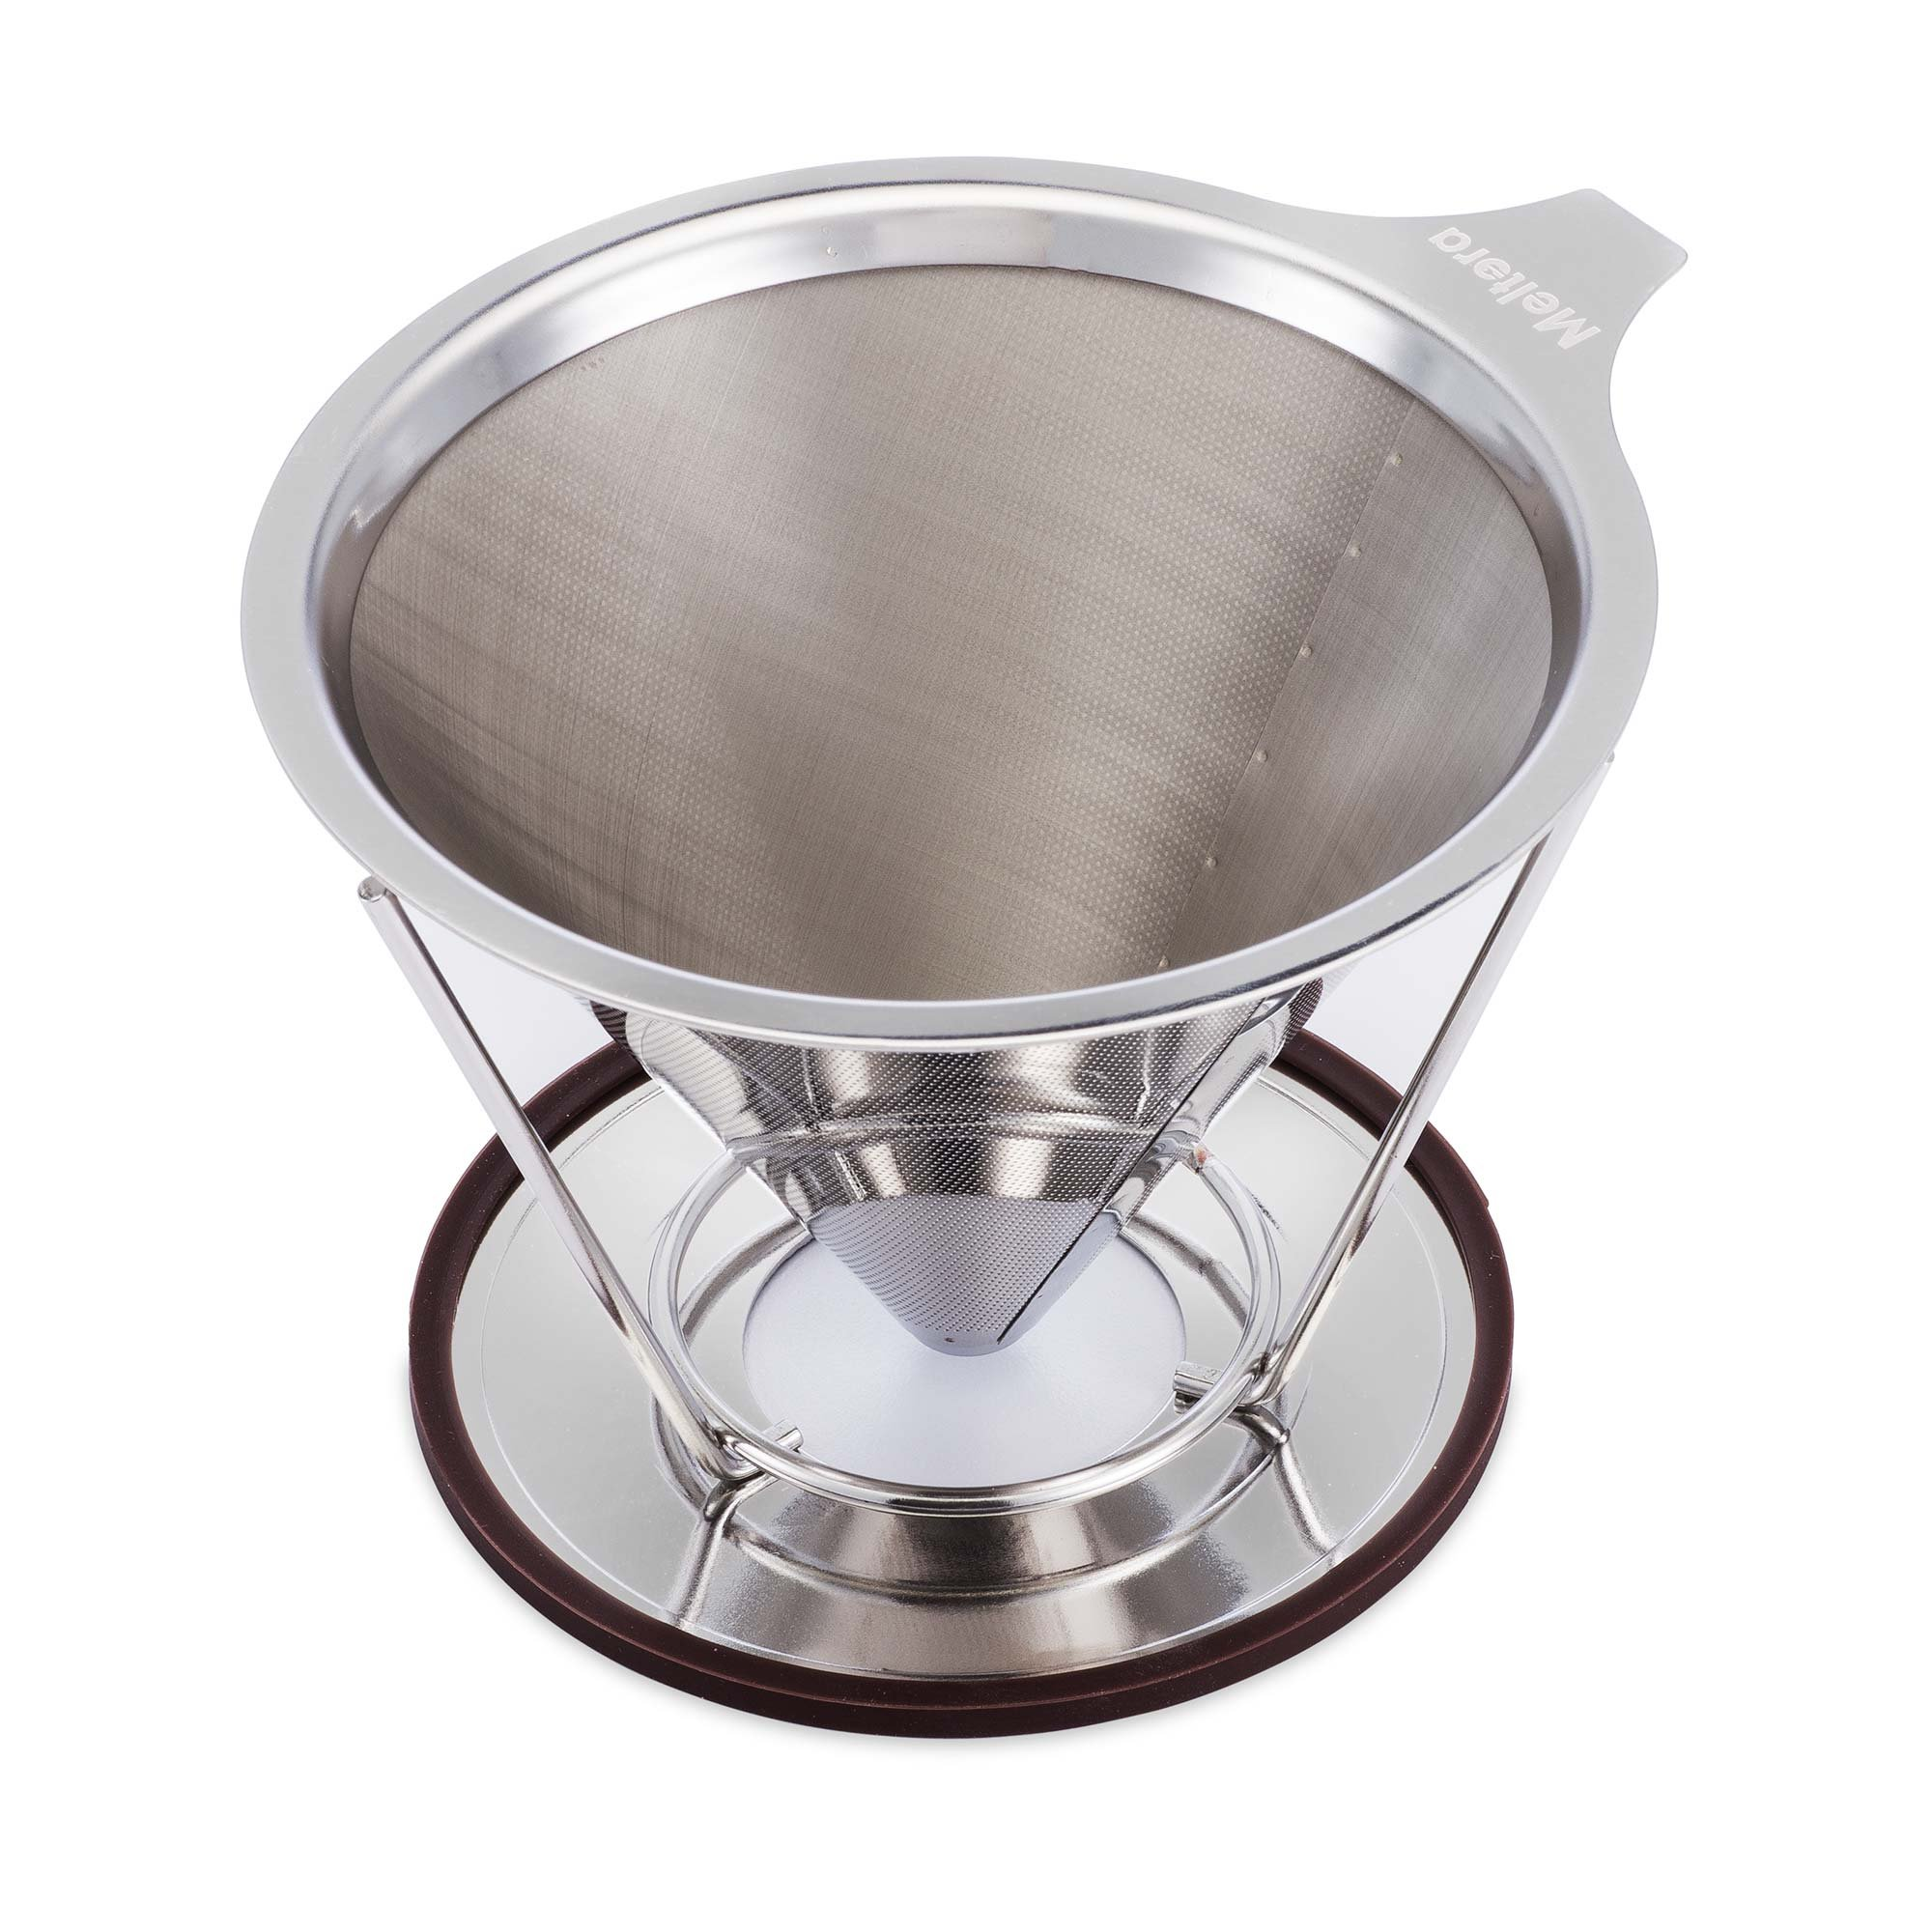 Single Cup Coffee Maker by Meltera, Pour Over Coffee Filter for Best Brew, Stainless Steel & Reusable Cone Dripper with Removable Stand, 100% Paperless & Eco-Friendly, Works With Carafe by Meltera